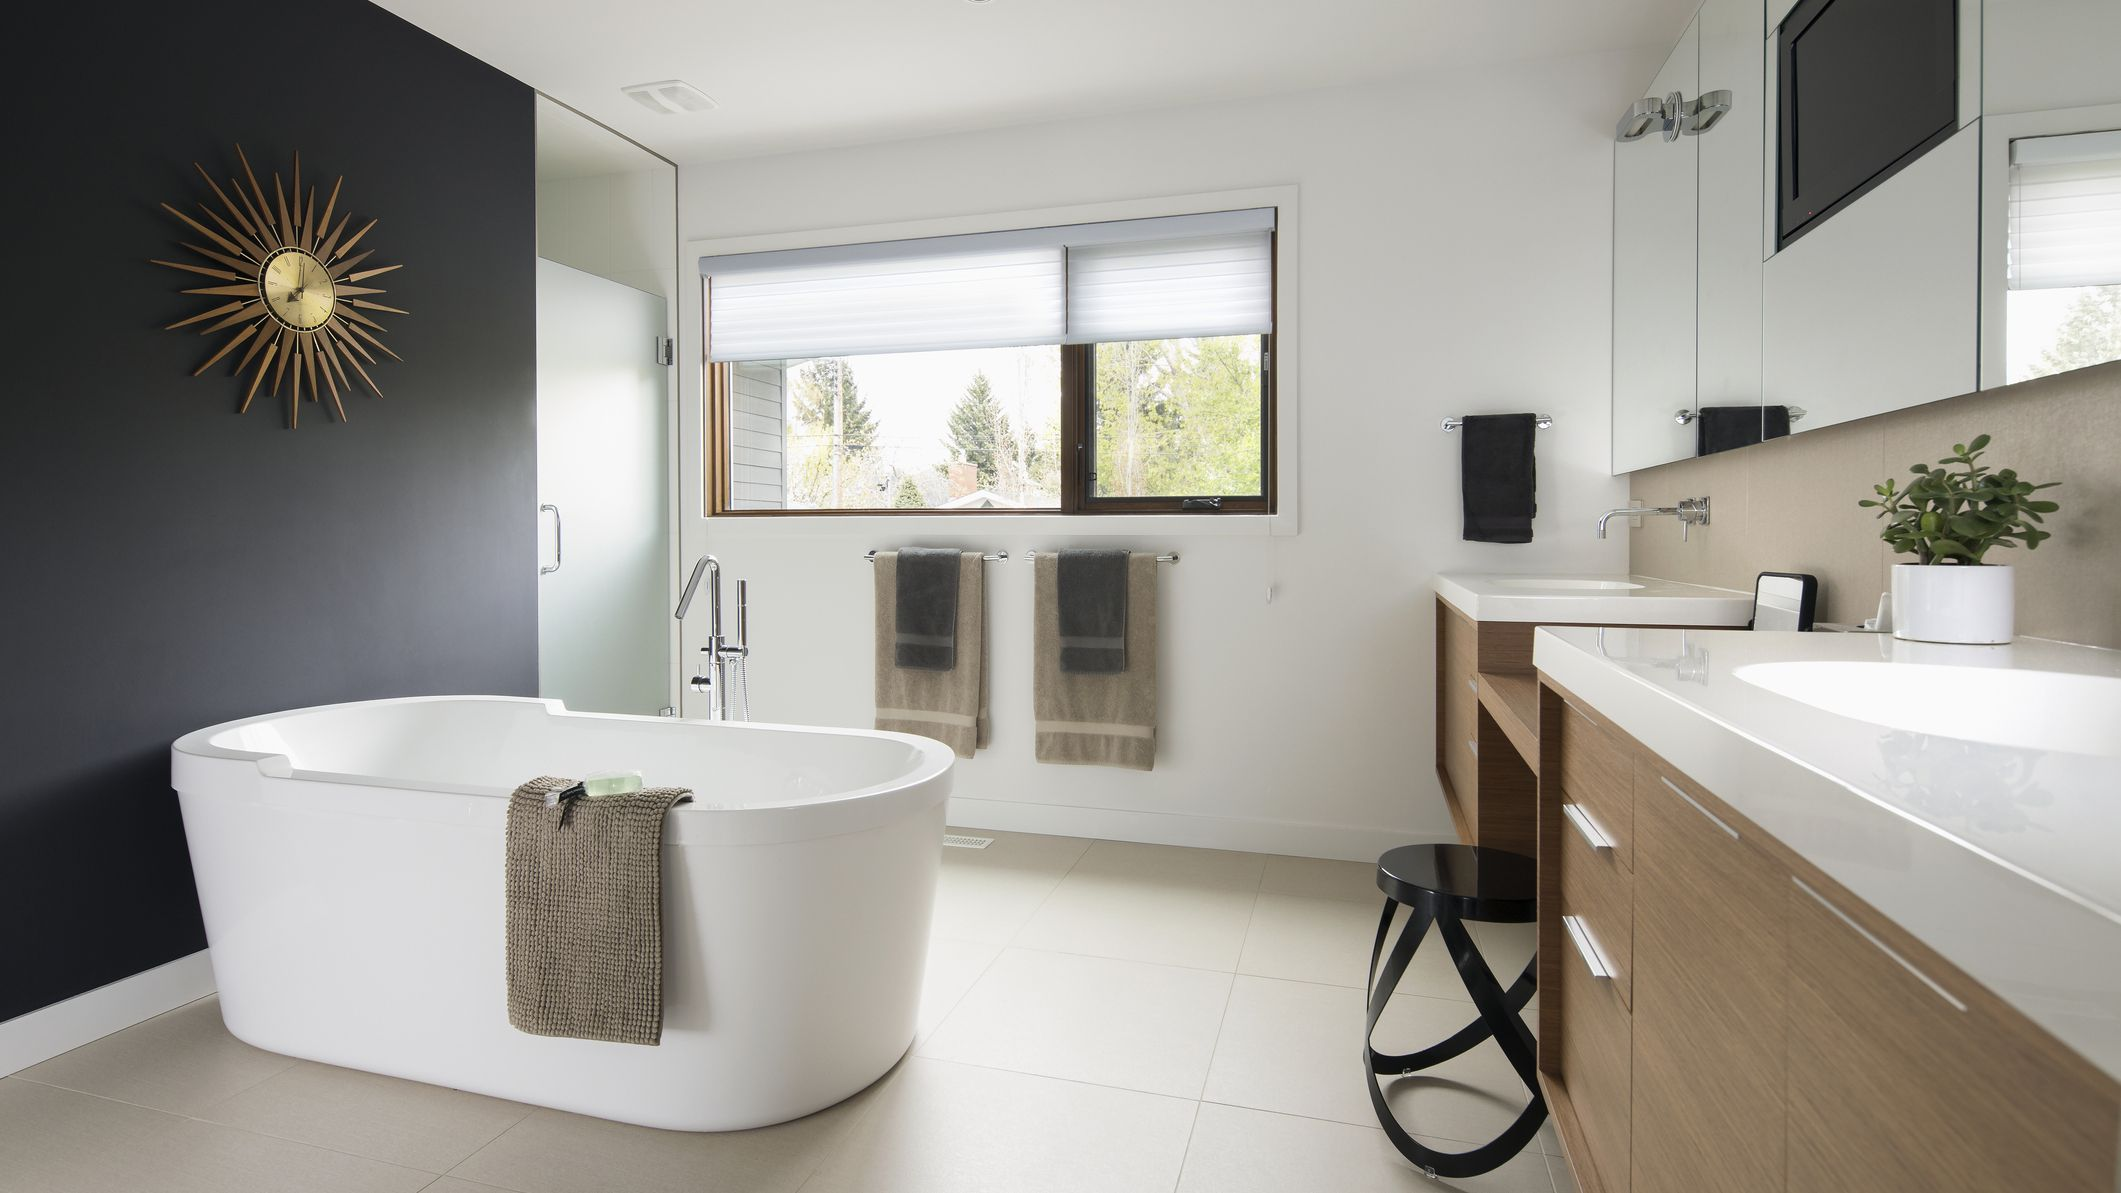 11 Ideas for Modern-Style Bathrooms